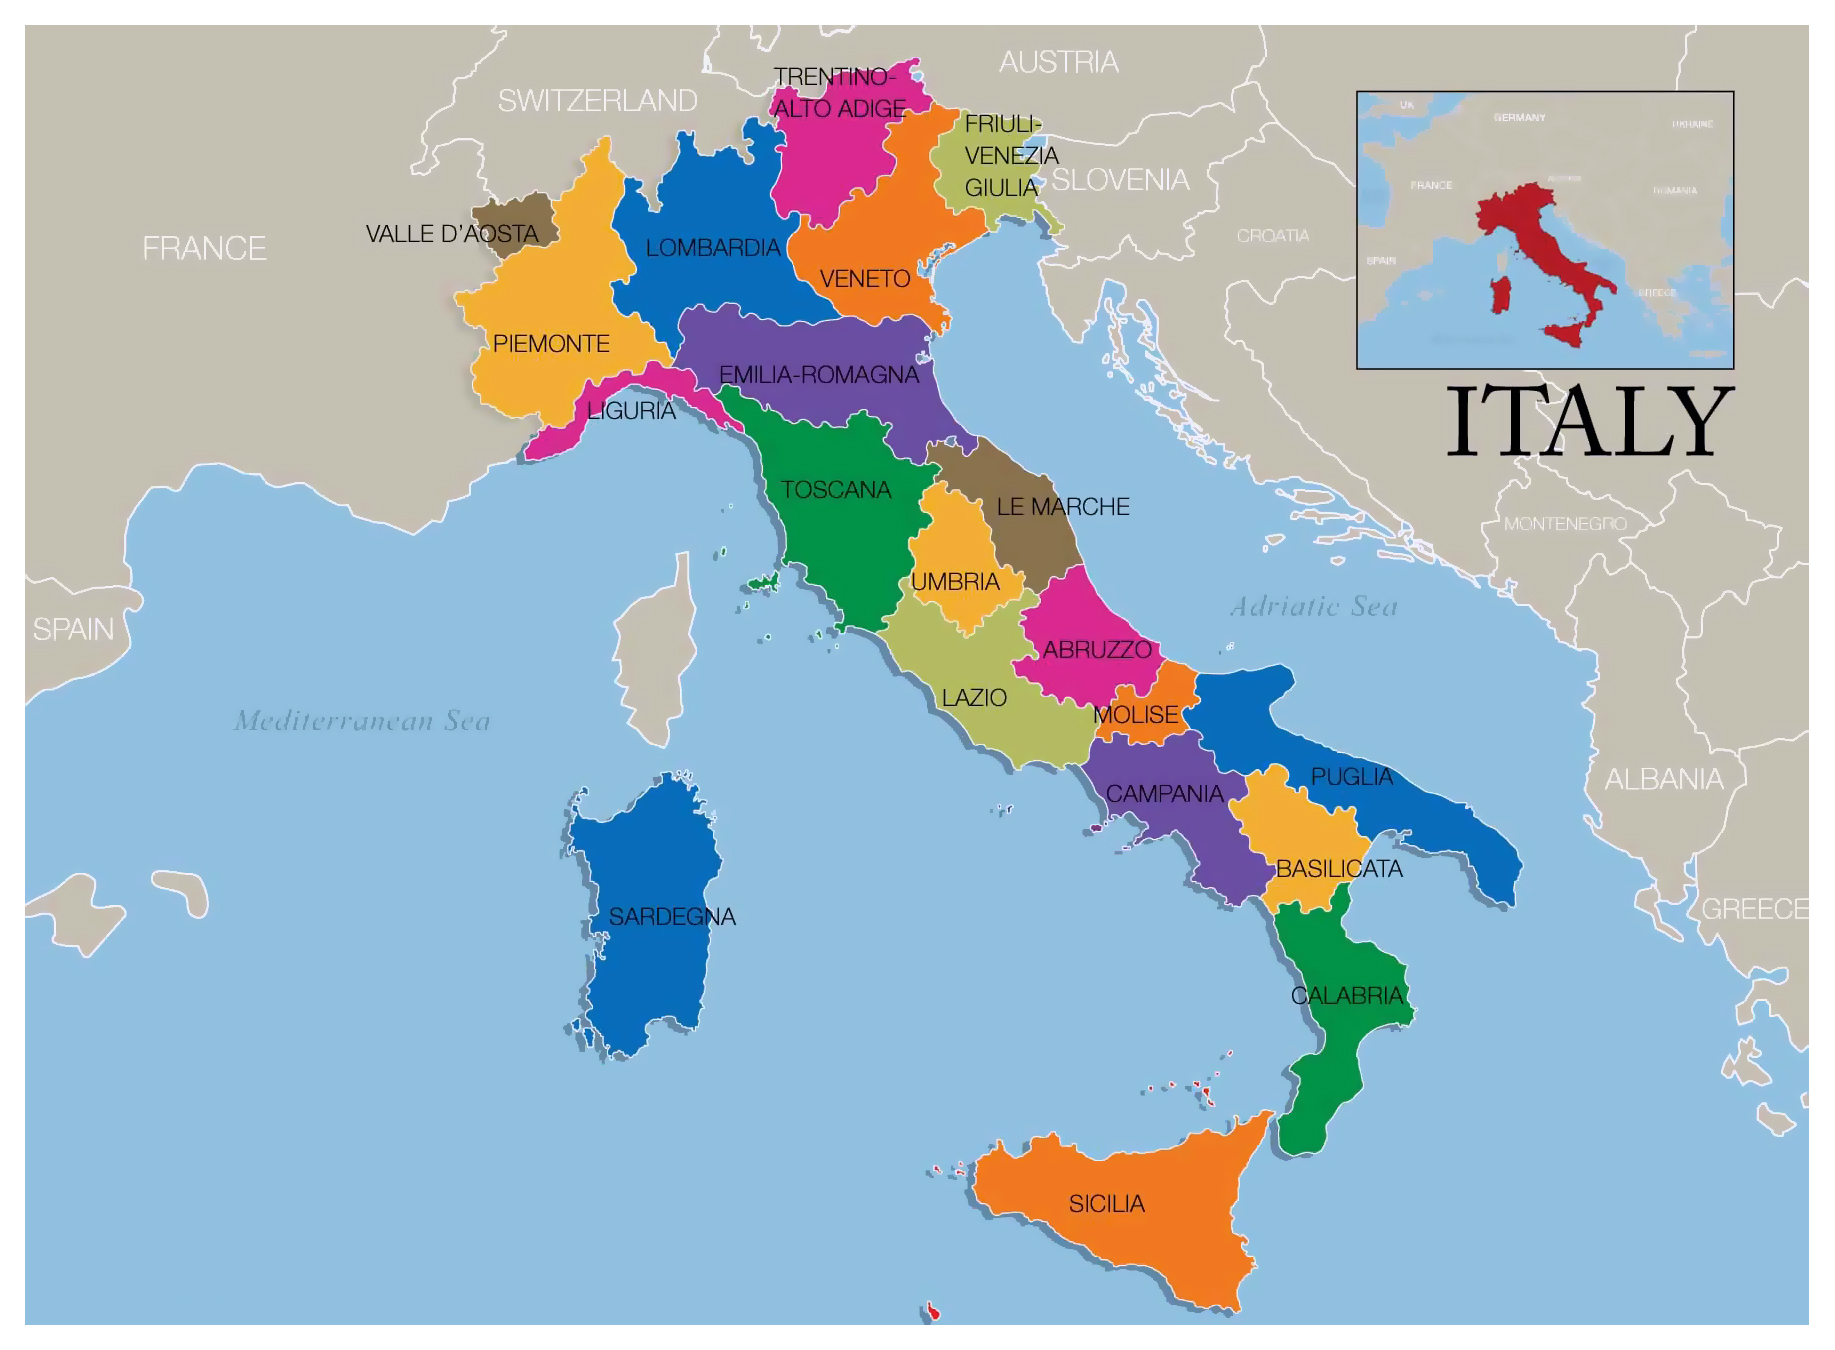 Large Map Of Italy.Large Map Of Wine Regions Of Italy Italy Europe Mapsland